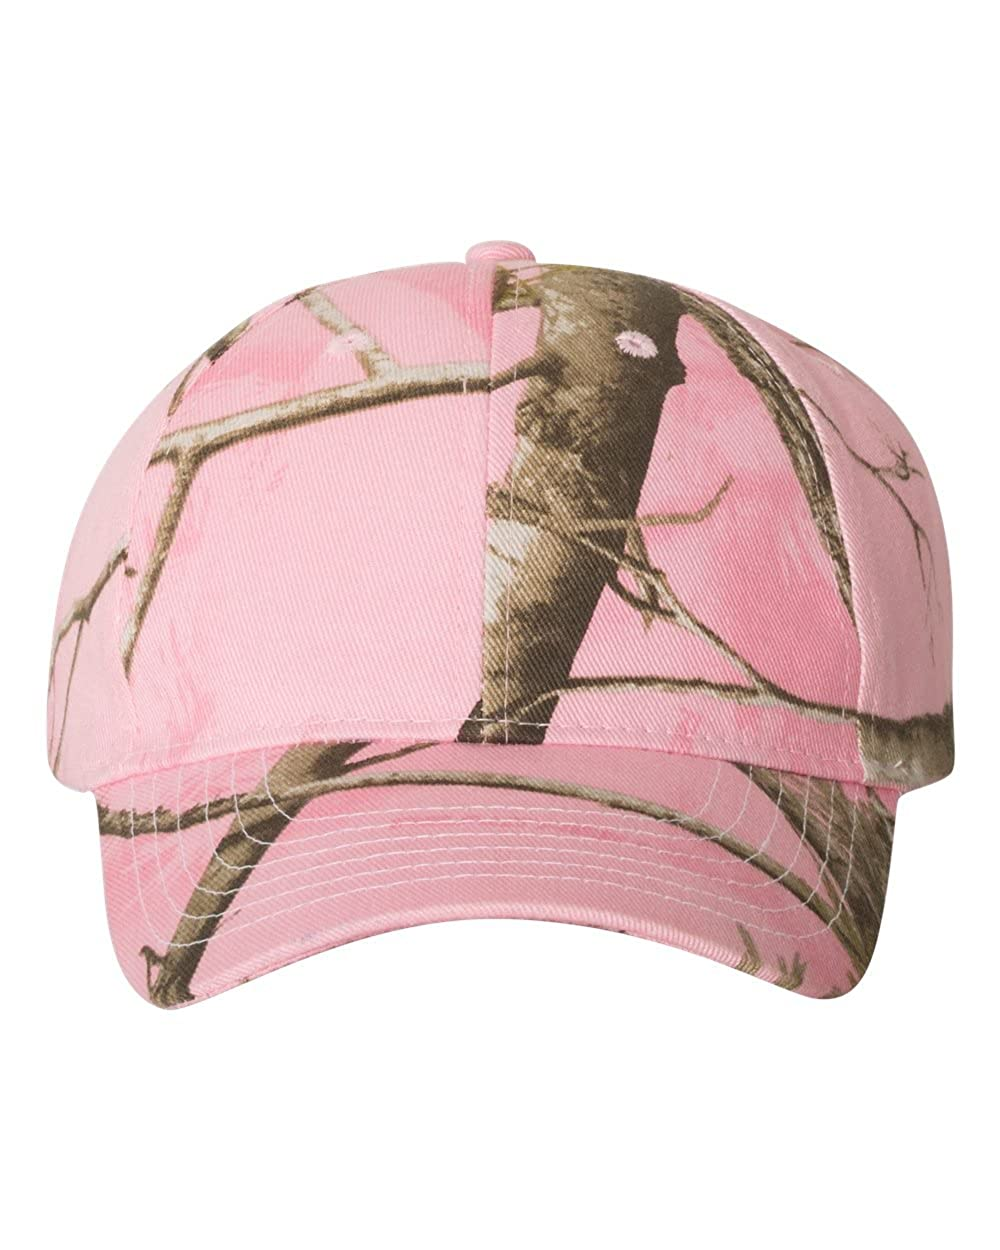 Kati - Structured Camo Cap - SN200